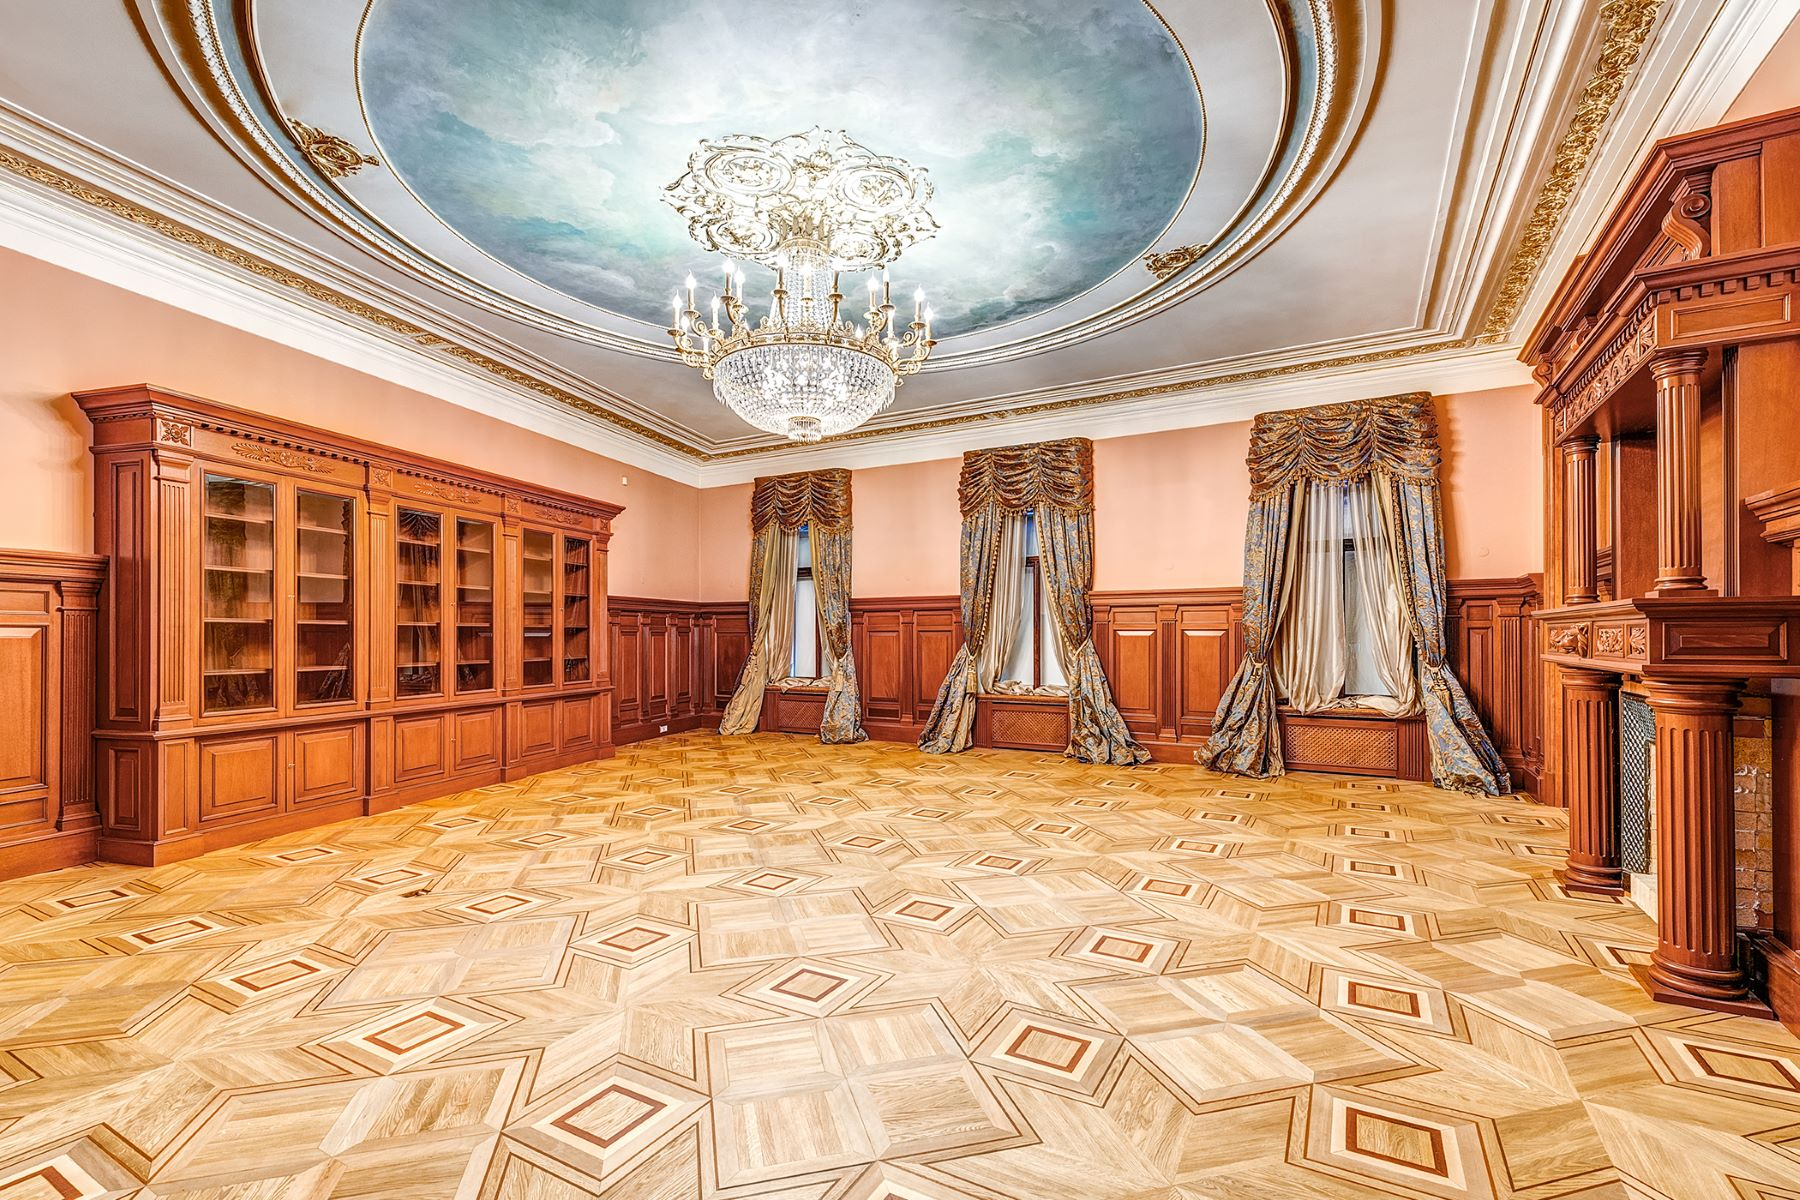 Single Family Home for Sale at Historic house of the 19-20th century Moscow, Other Areas In Russia Russia